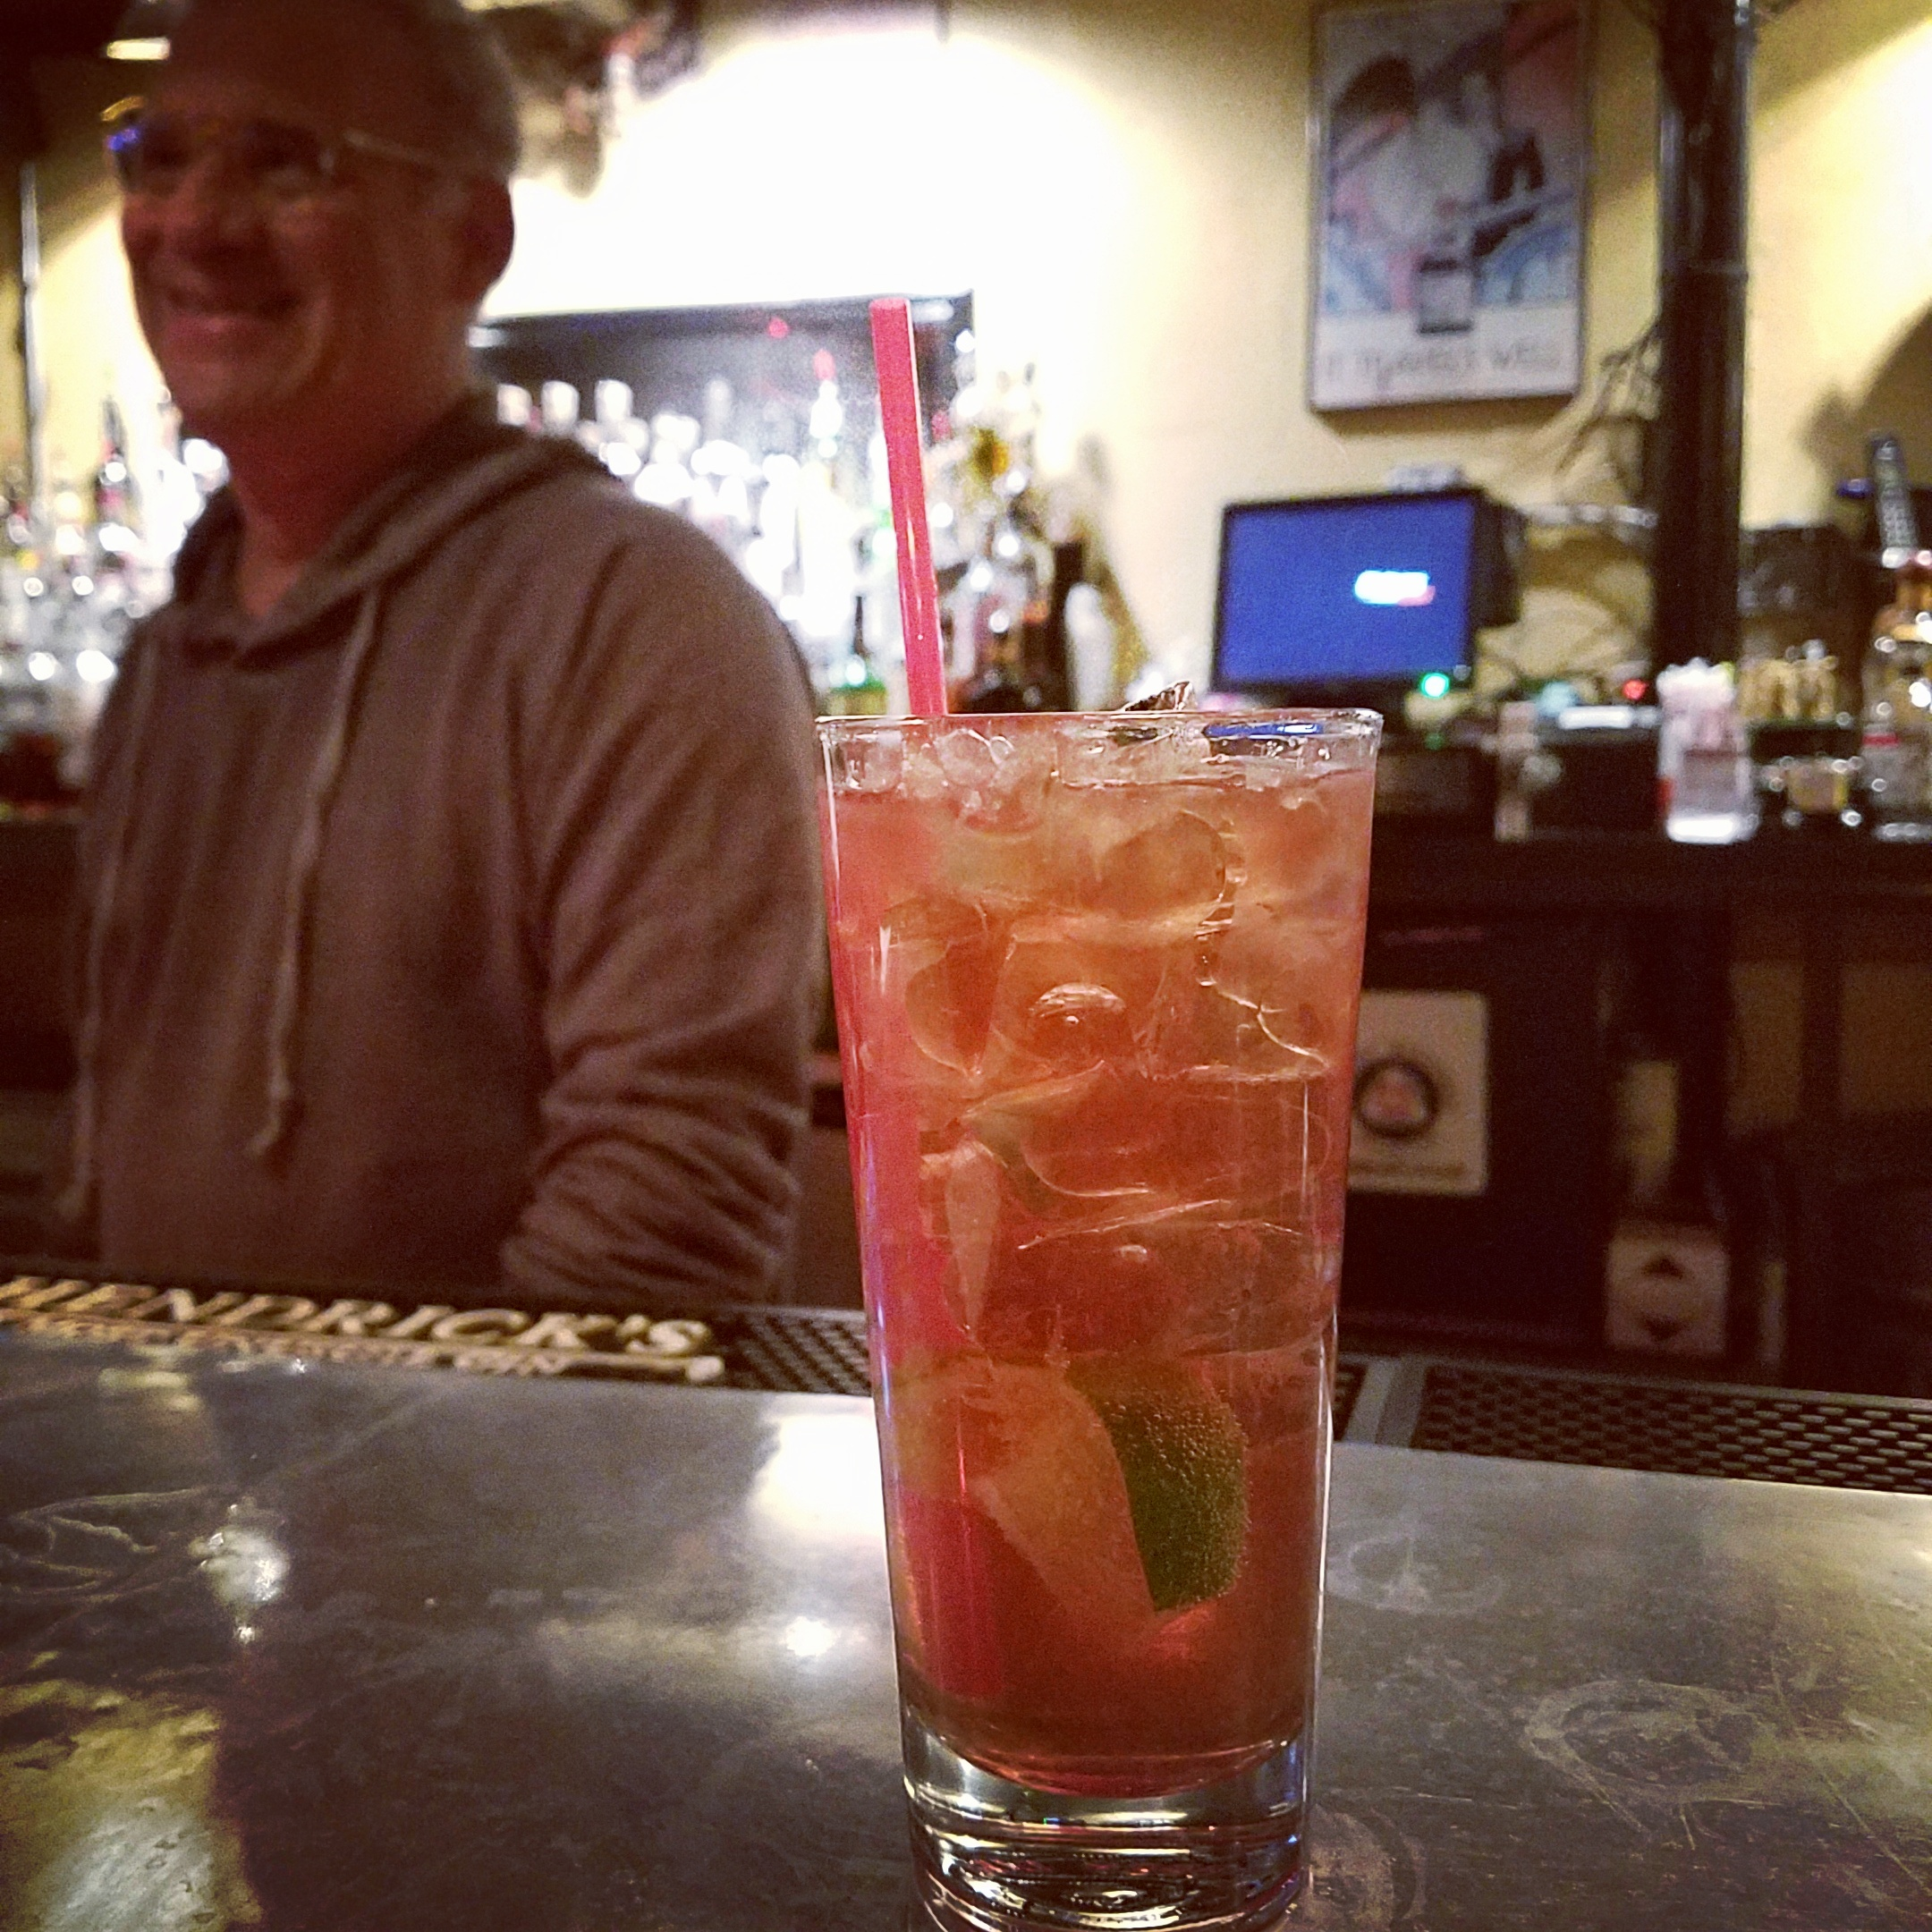 Industry Alley's Singapore Sling is barman Charlie Papaceno's slightly tweaked version of what's believed to be the drink's original recipe.